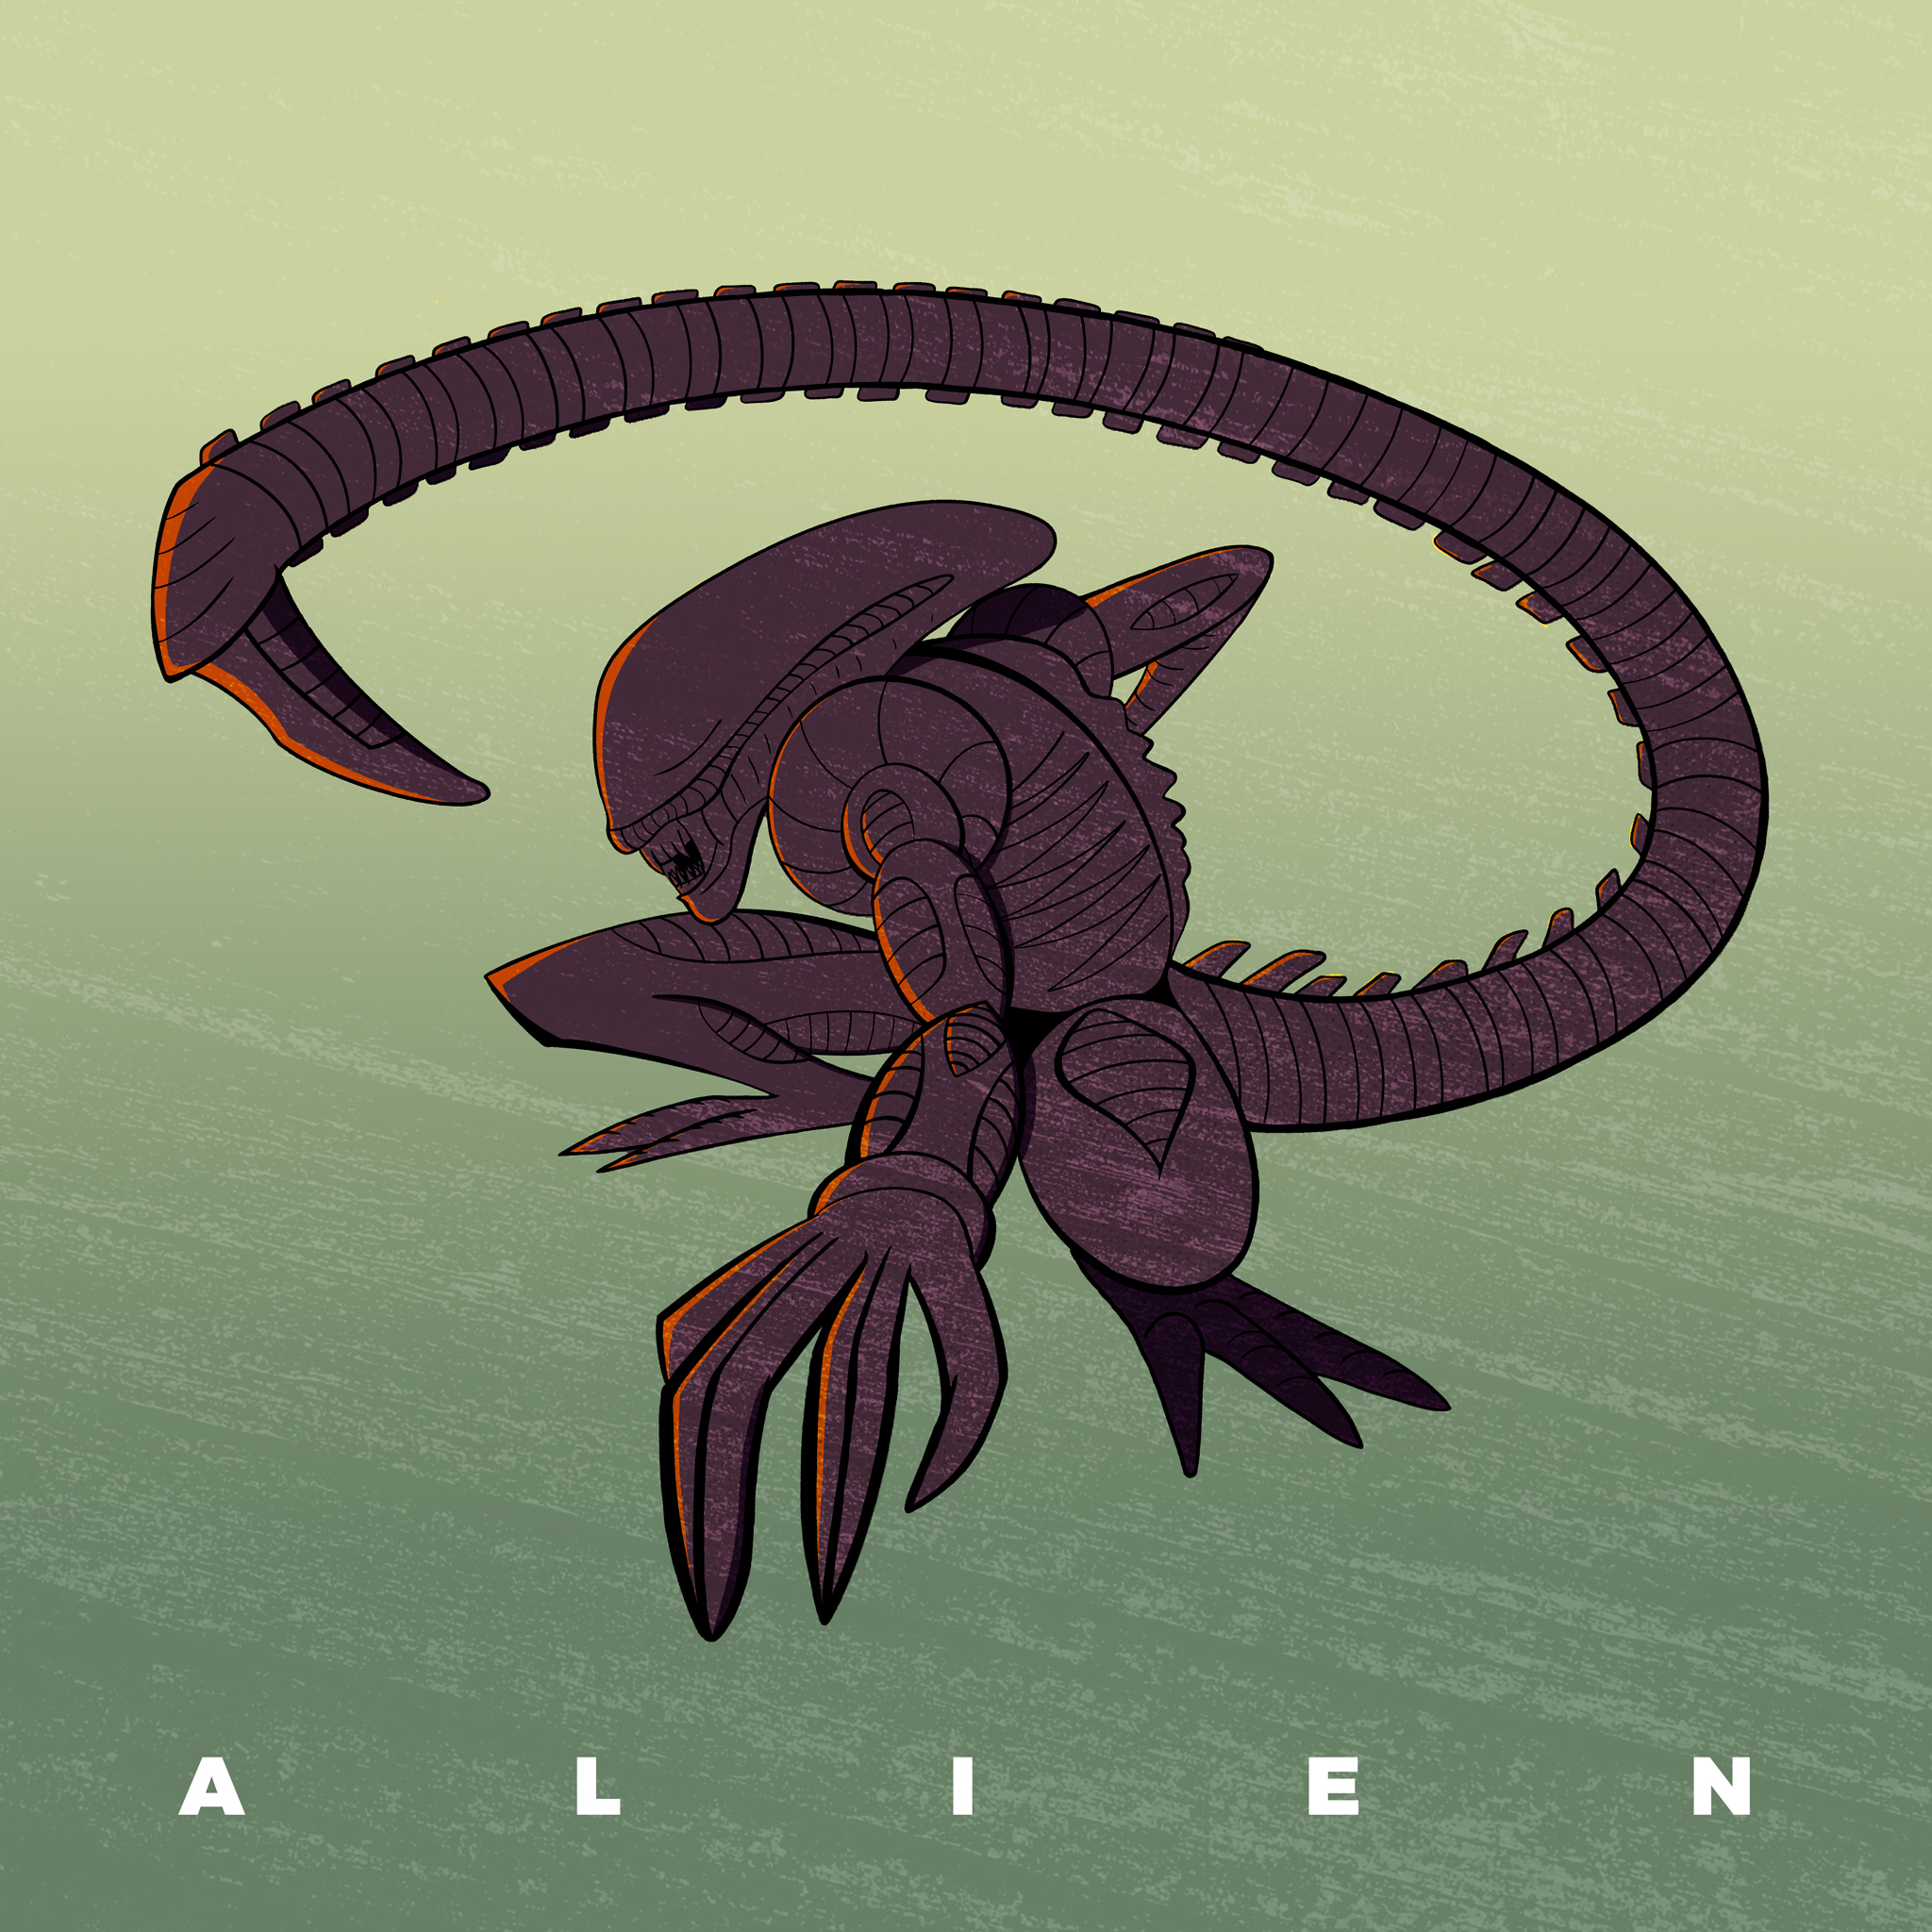 alien-fanart-01-RENDERED-ART-20190425-02.jpg